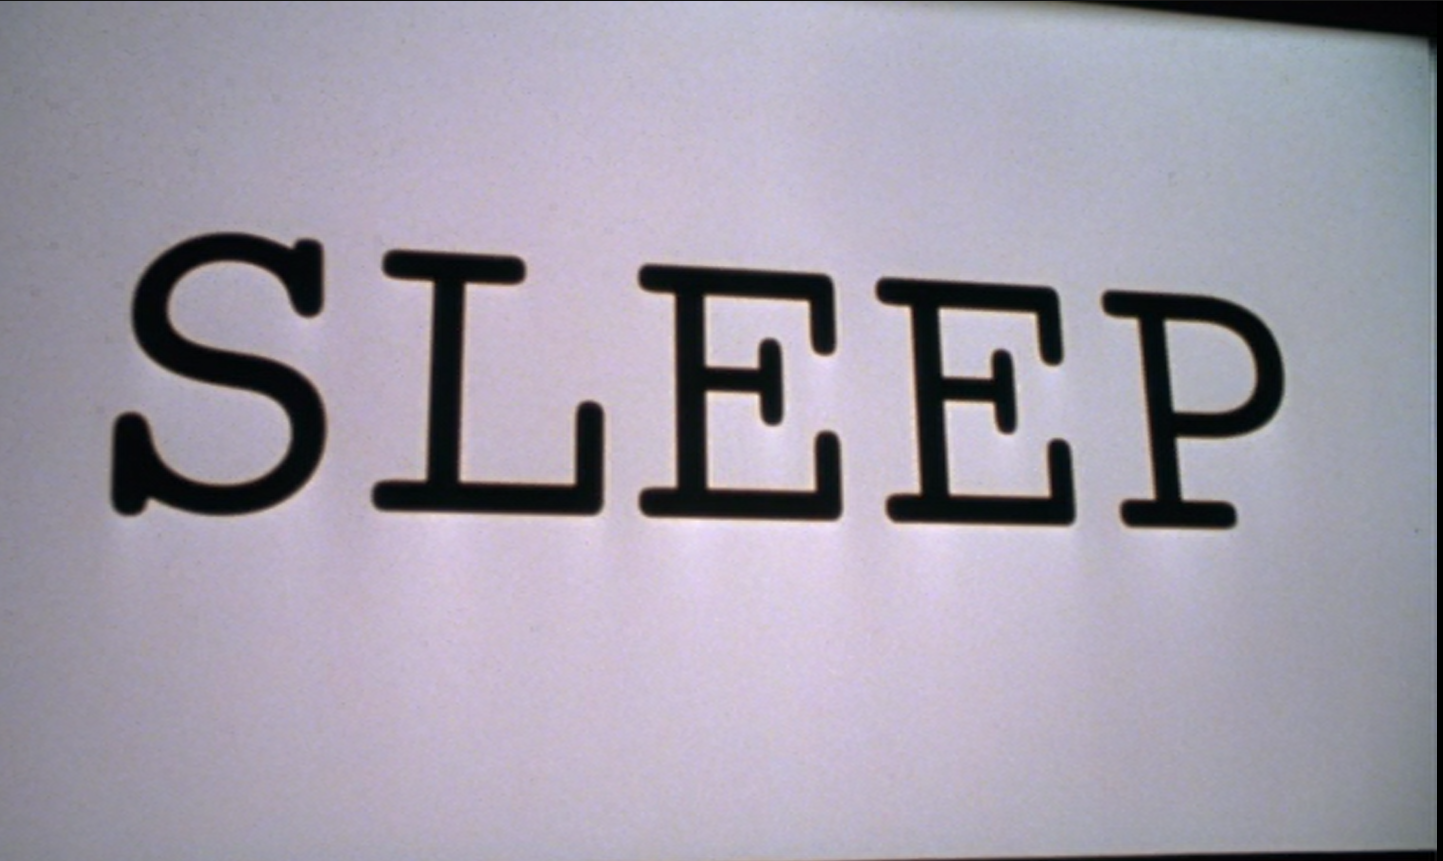 the word 'sleep' appears on the movie screen in Stir of Echoes